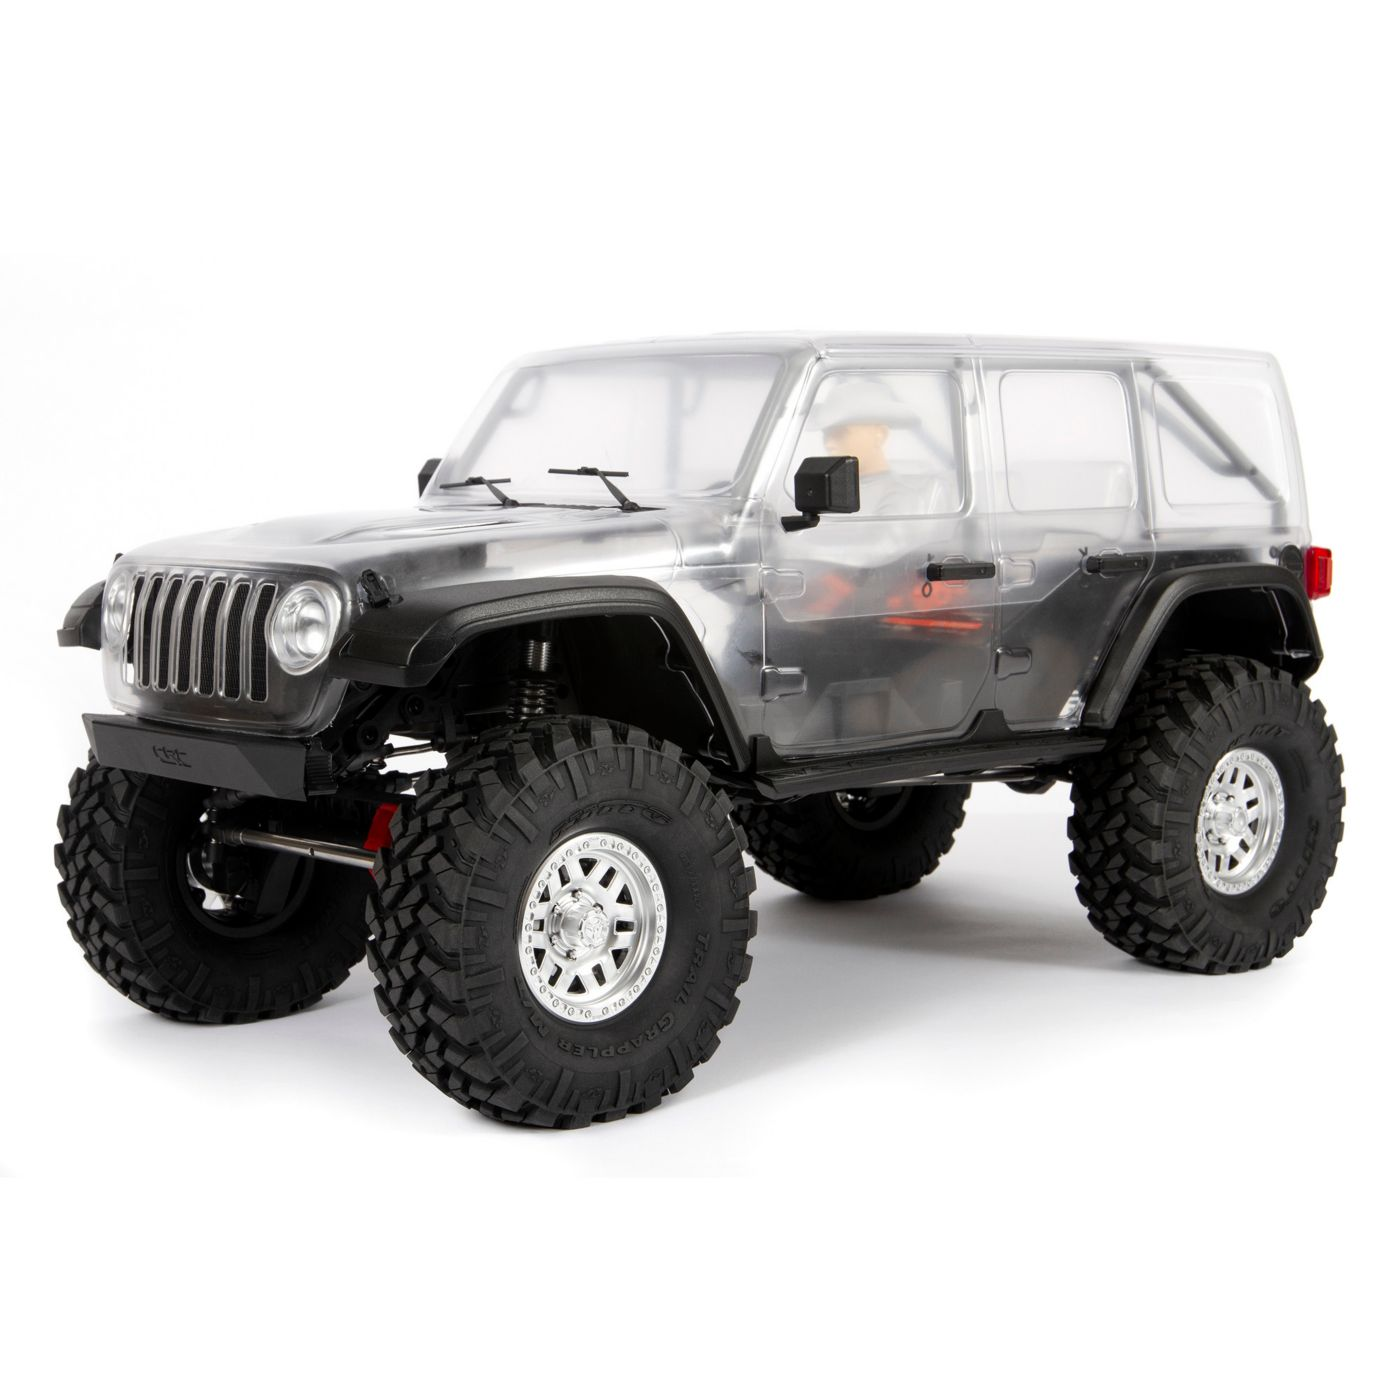 Axial Racing 1/10 SCX10 III Jeep JLU Wrangler with Portals 4WD Kit